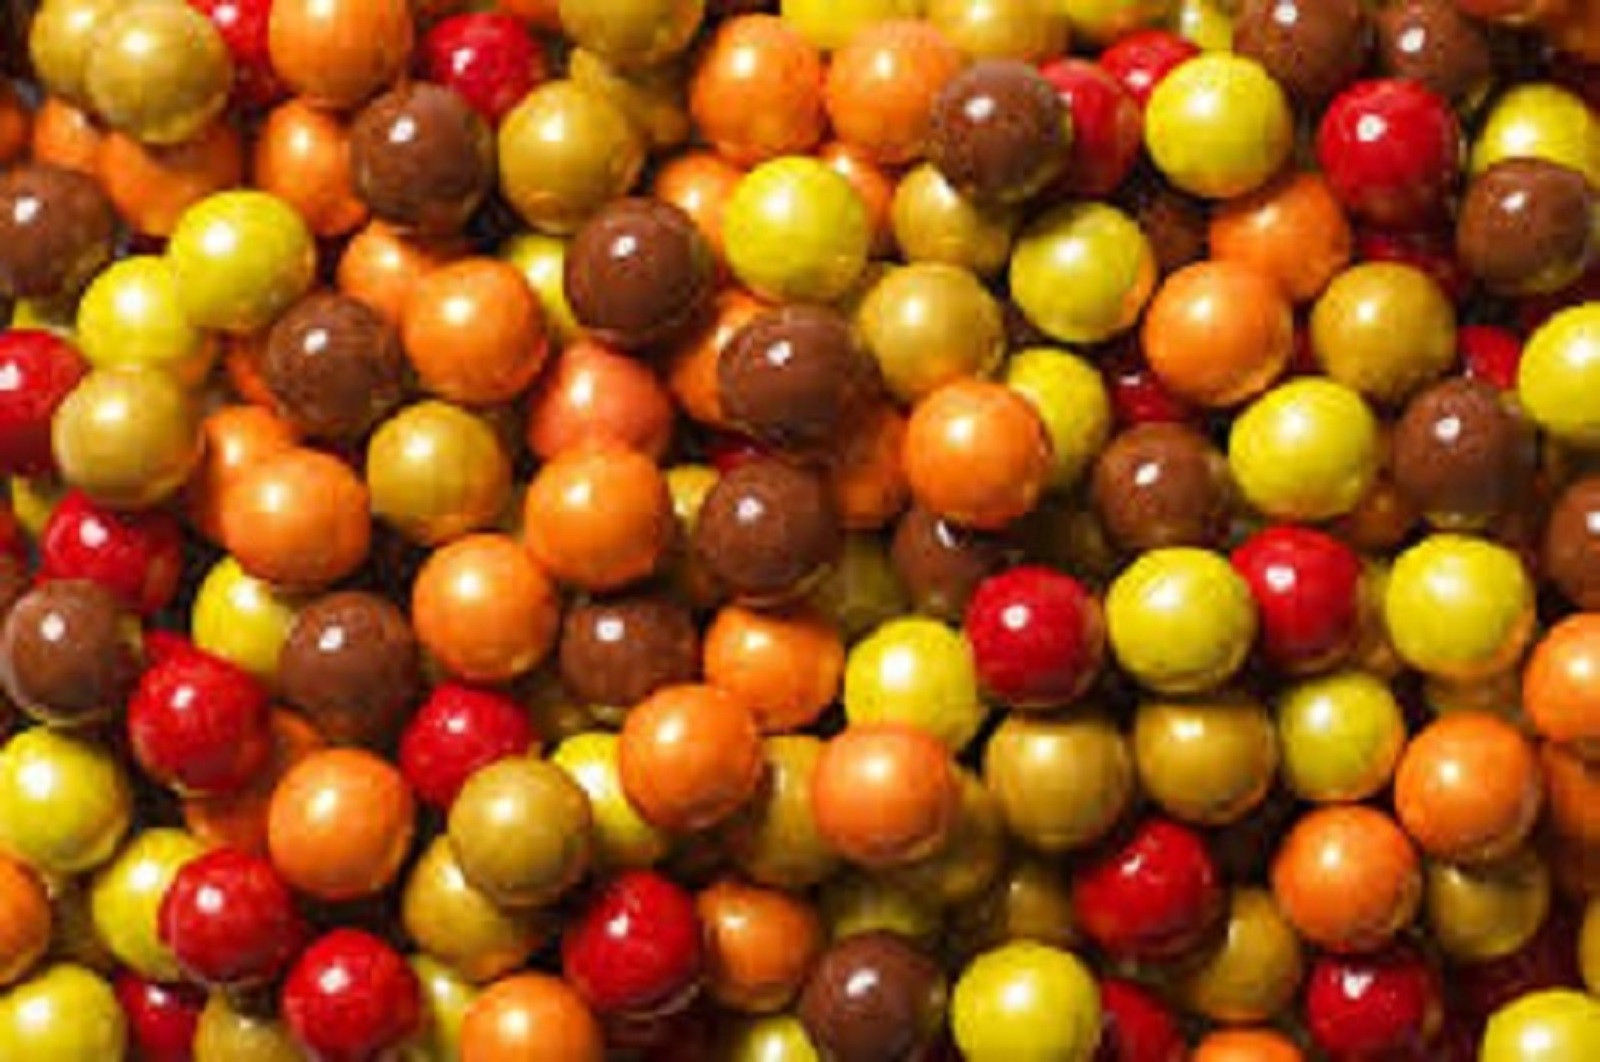 SIXLETS SHIMMER AUTUMN MIX, 5LBS